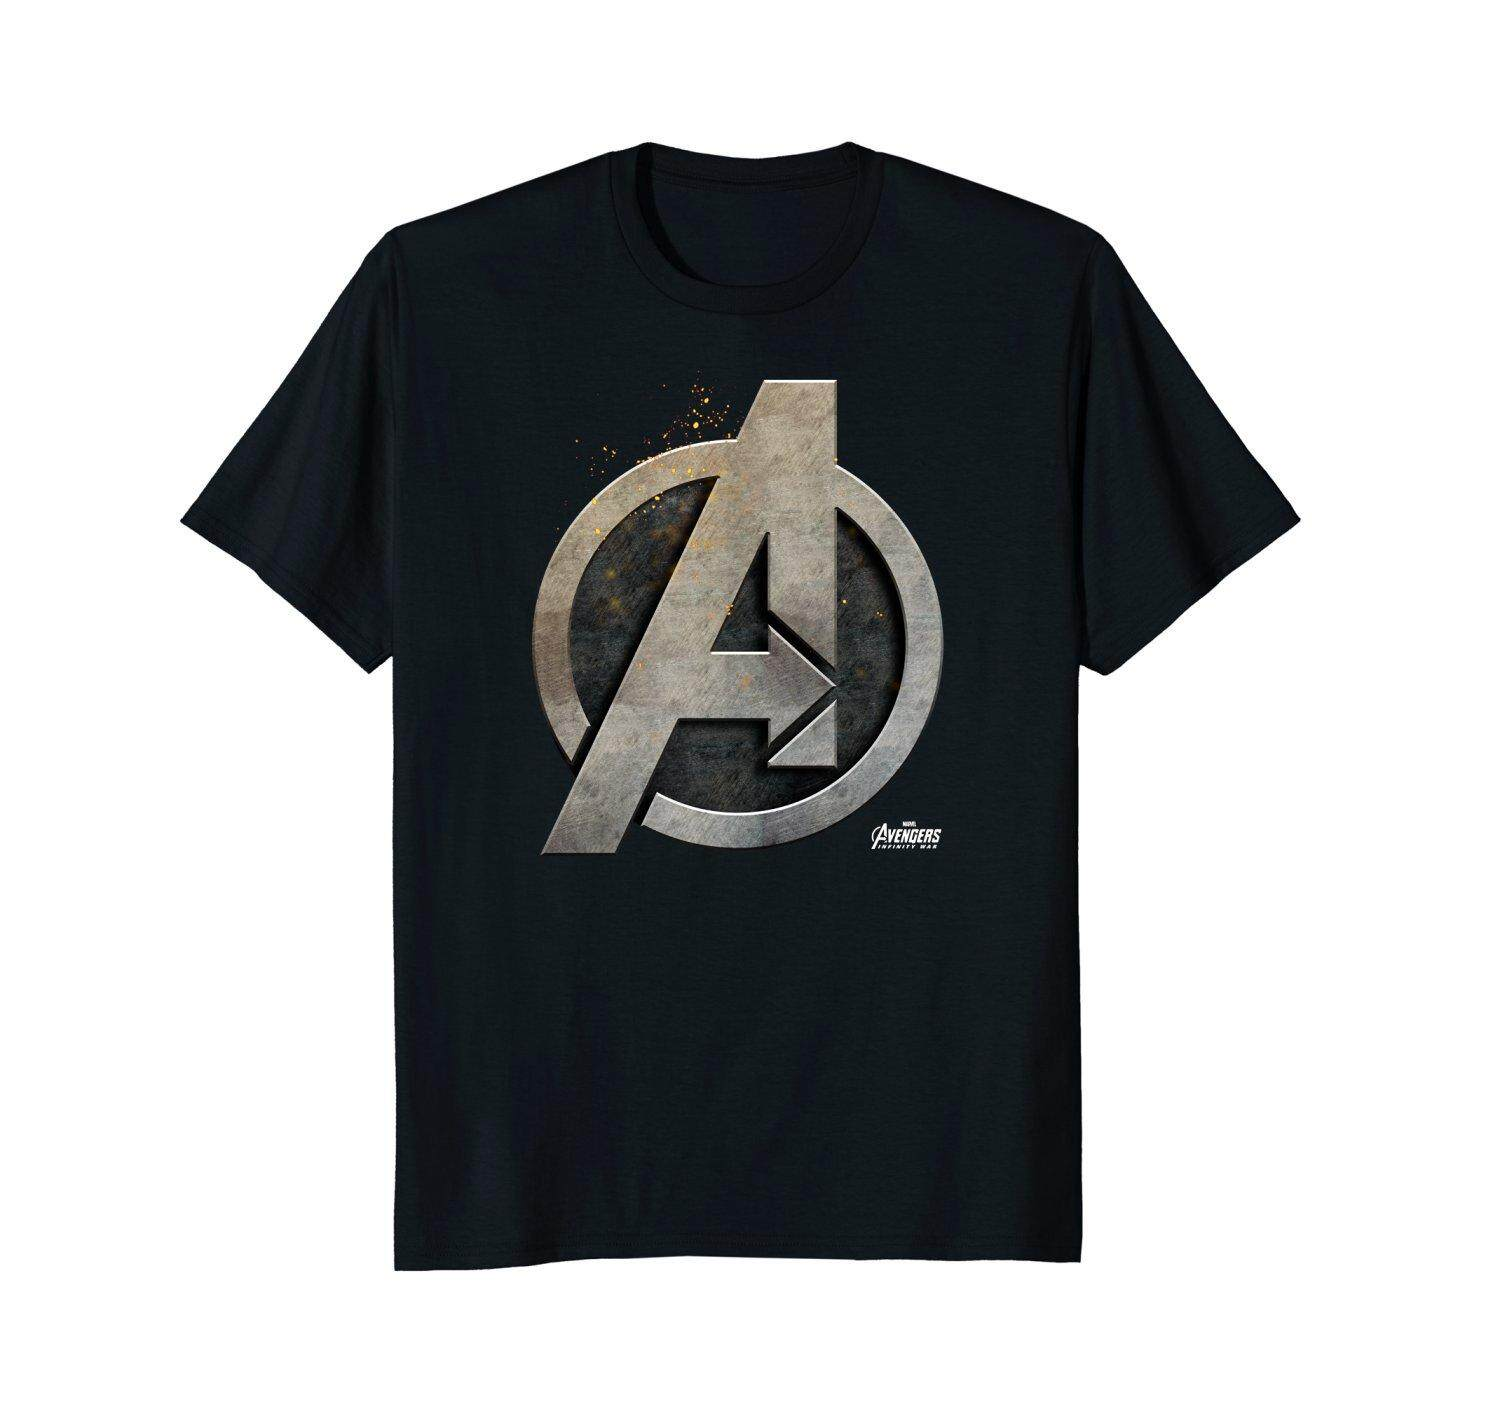 Marvel Avengers Infinity War Steel Symbol Graphic New Round Neck Mens T Shirts Tee Black